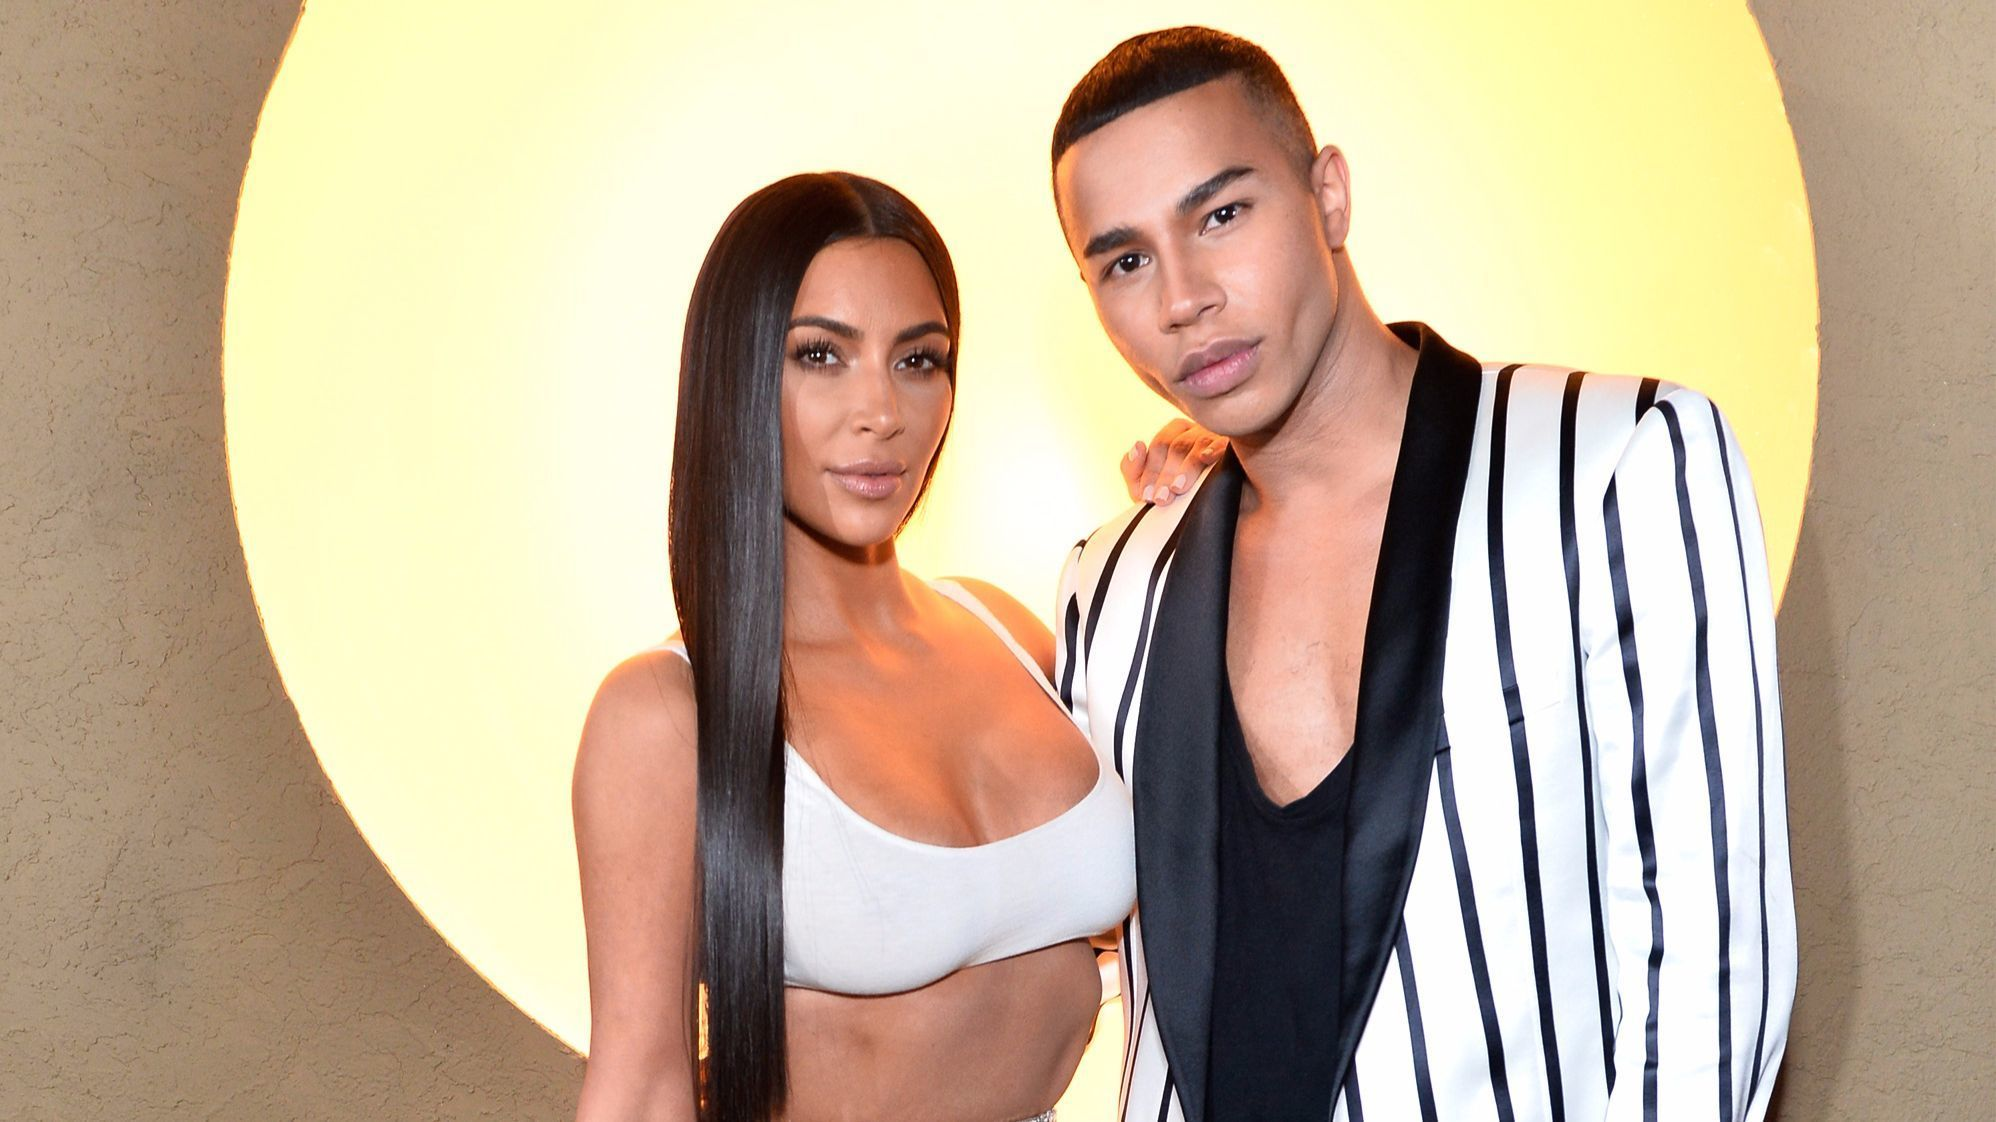 Kim Kardashian West and Olivier Rousteing at  at the Balmain and Beats by Dre collaboration party in Beverly Hills.